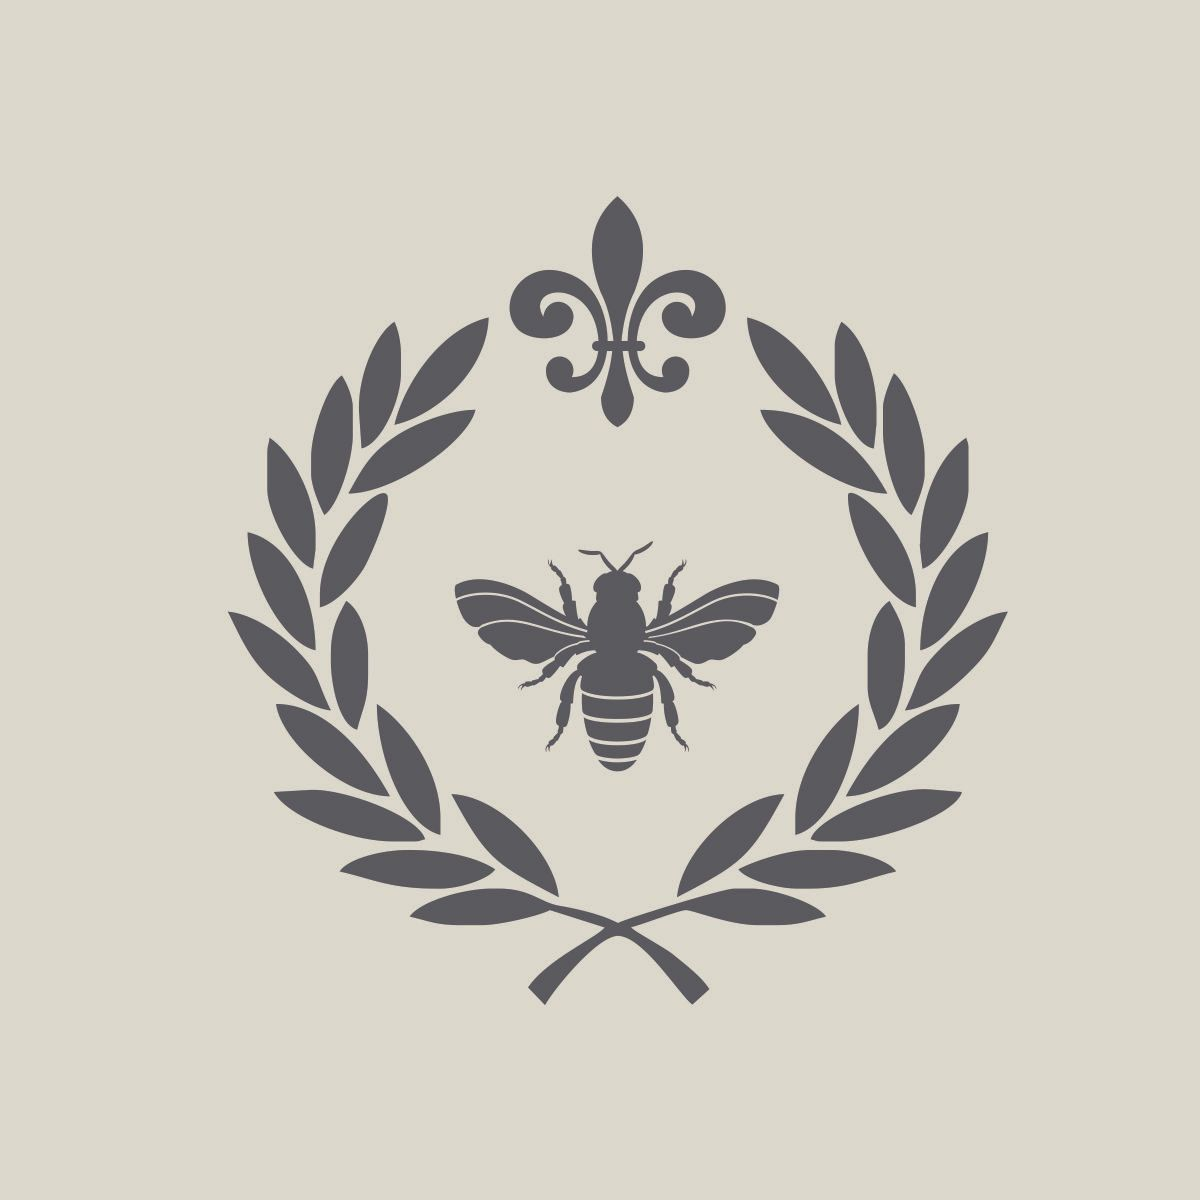 french by design vinyl wall decals laurel wreath bon appetit french by design vinyl wall decals laurel wreath bon appetit queen bee